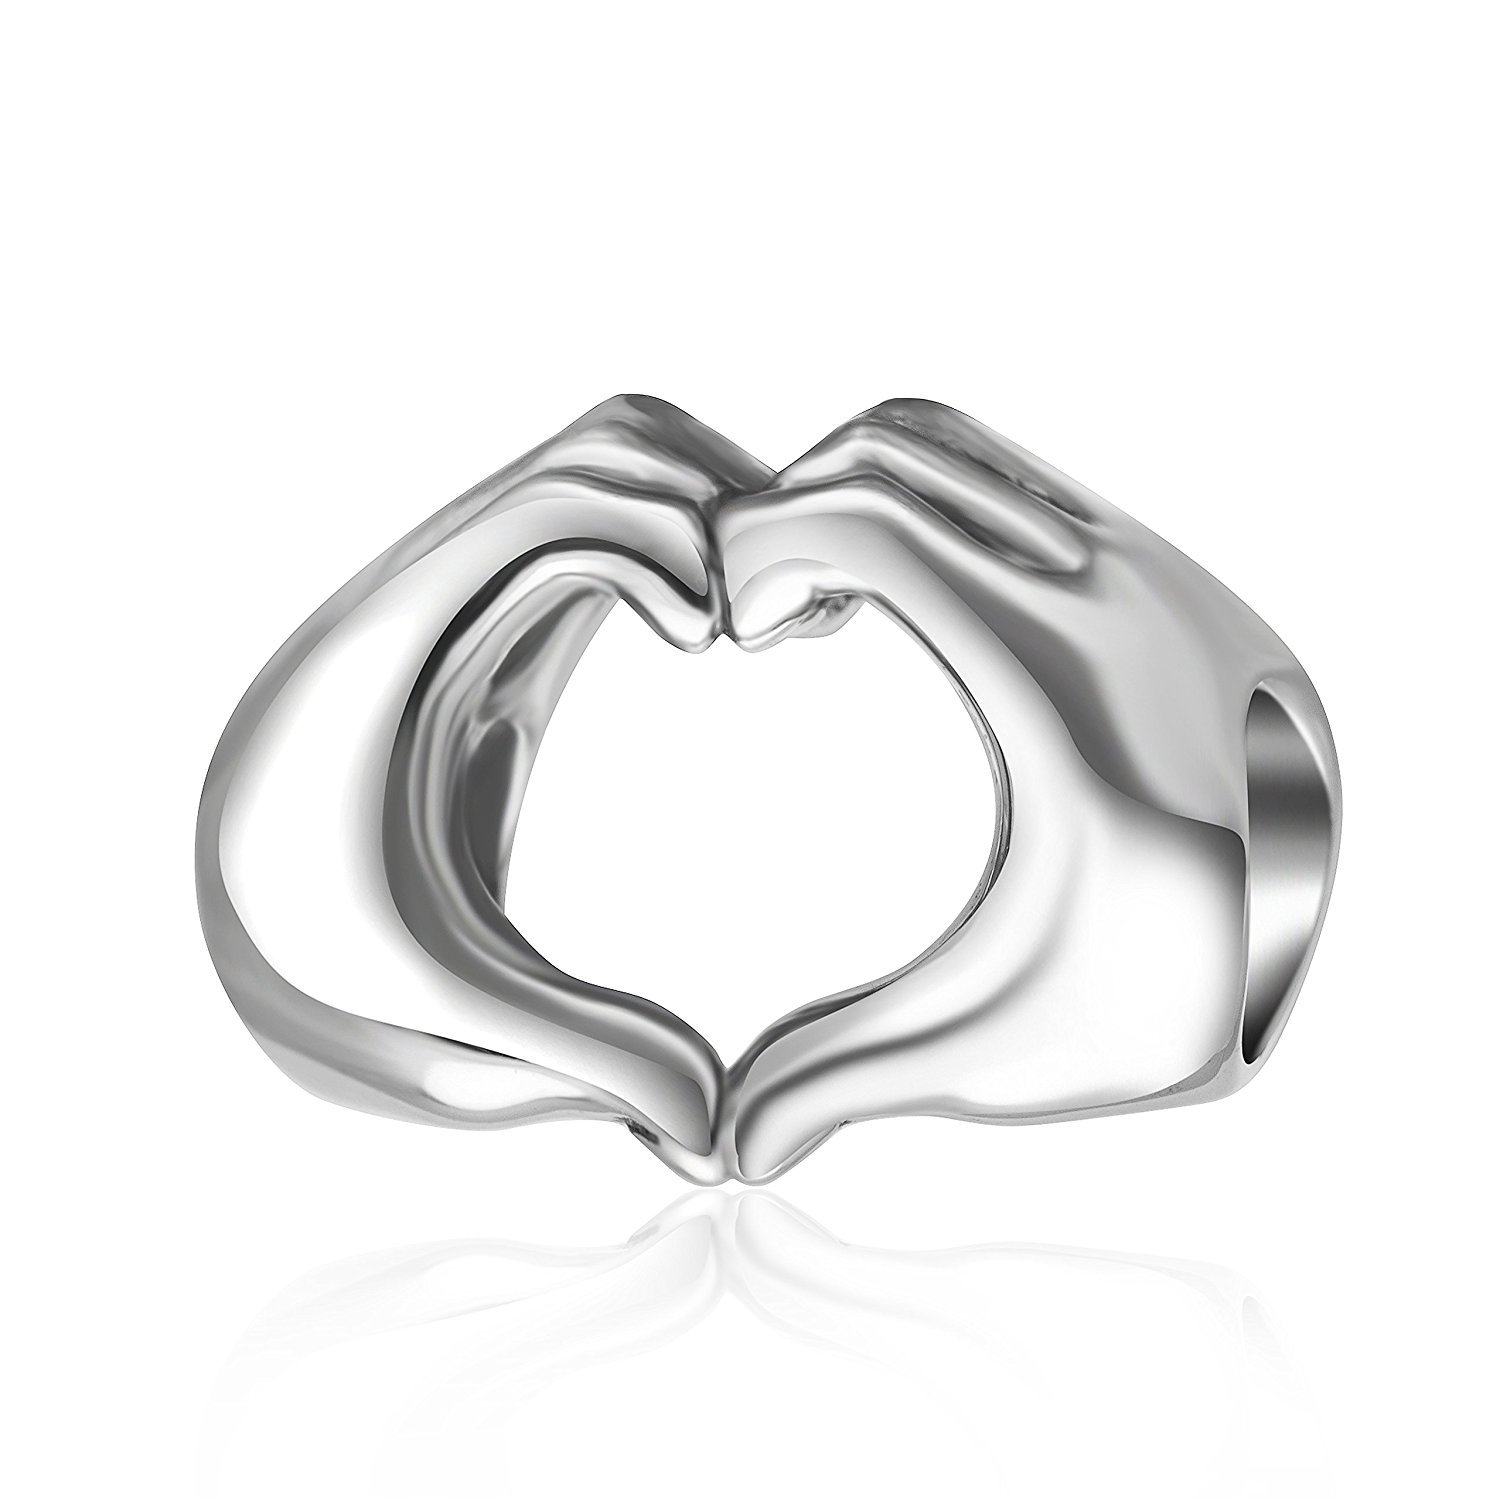 925 Sterling Silver Love Heart in Your Hands Charm for Charms Bracelets, Xmas Gifts Idea 4336819625